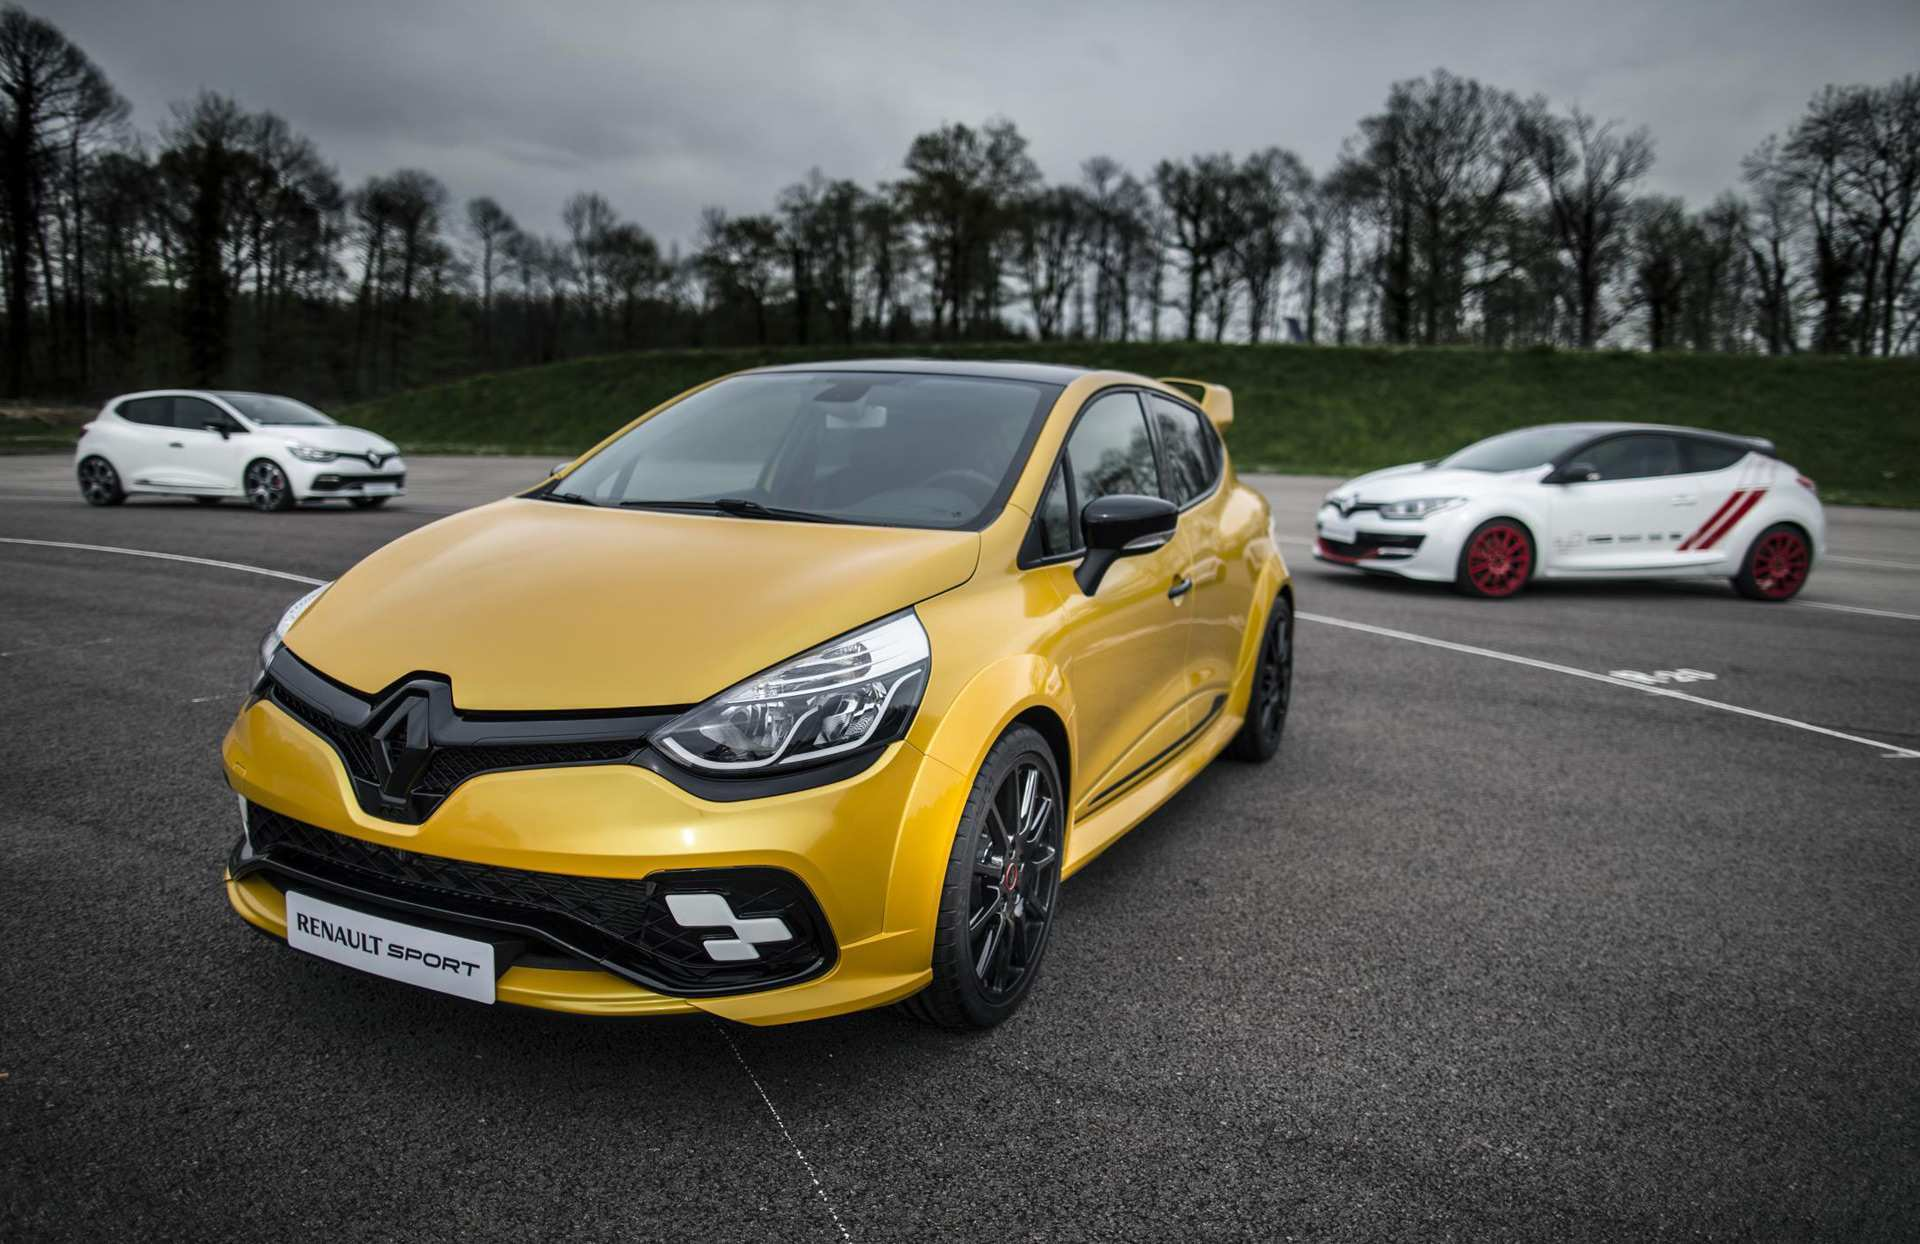 22 Gallery of 2019 Renault Clio Rs Wallpaper by 2019 Renault Clio Rs